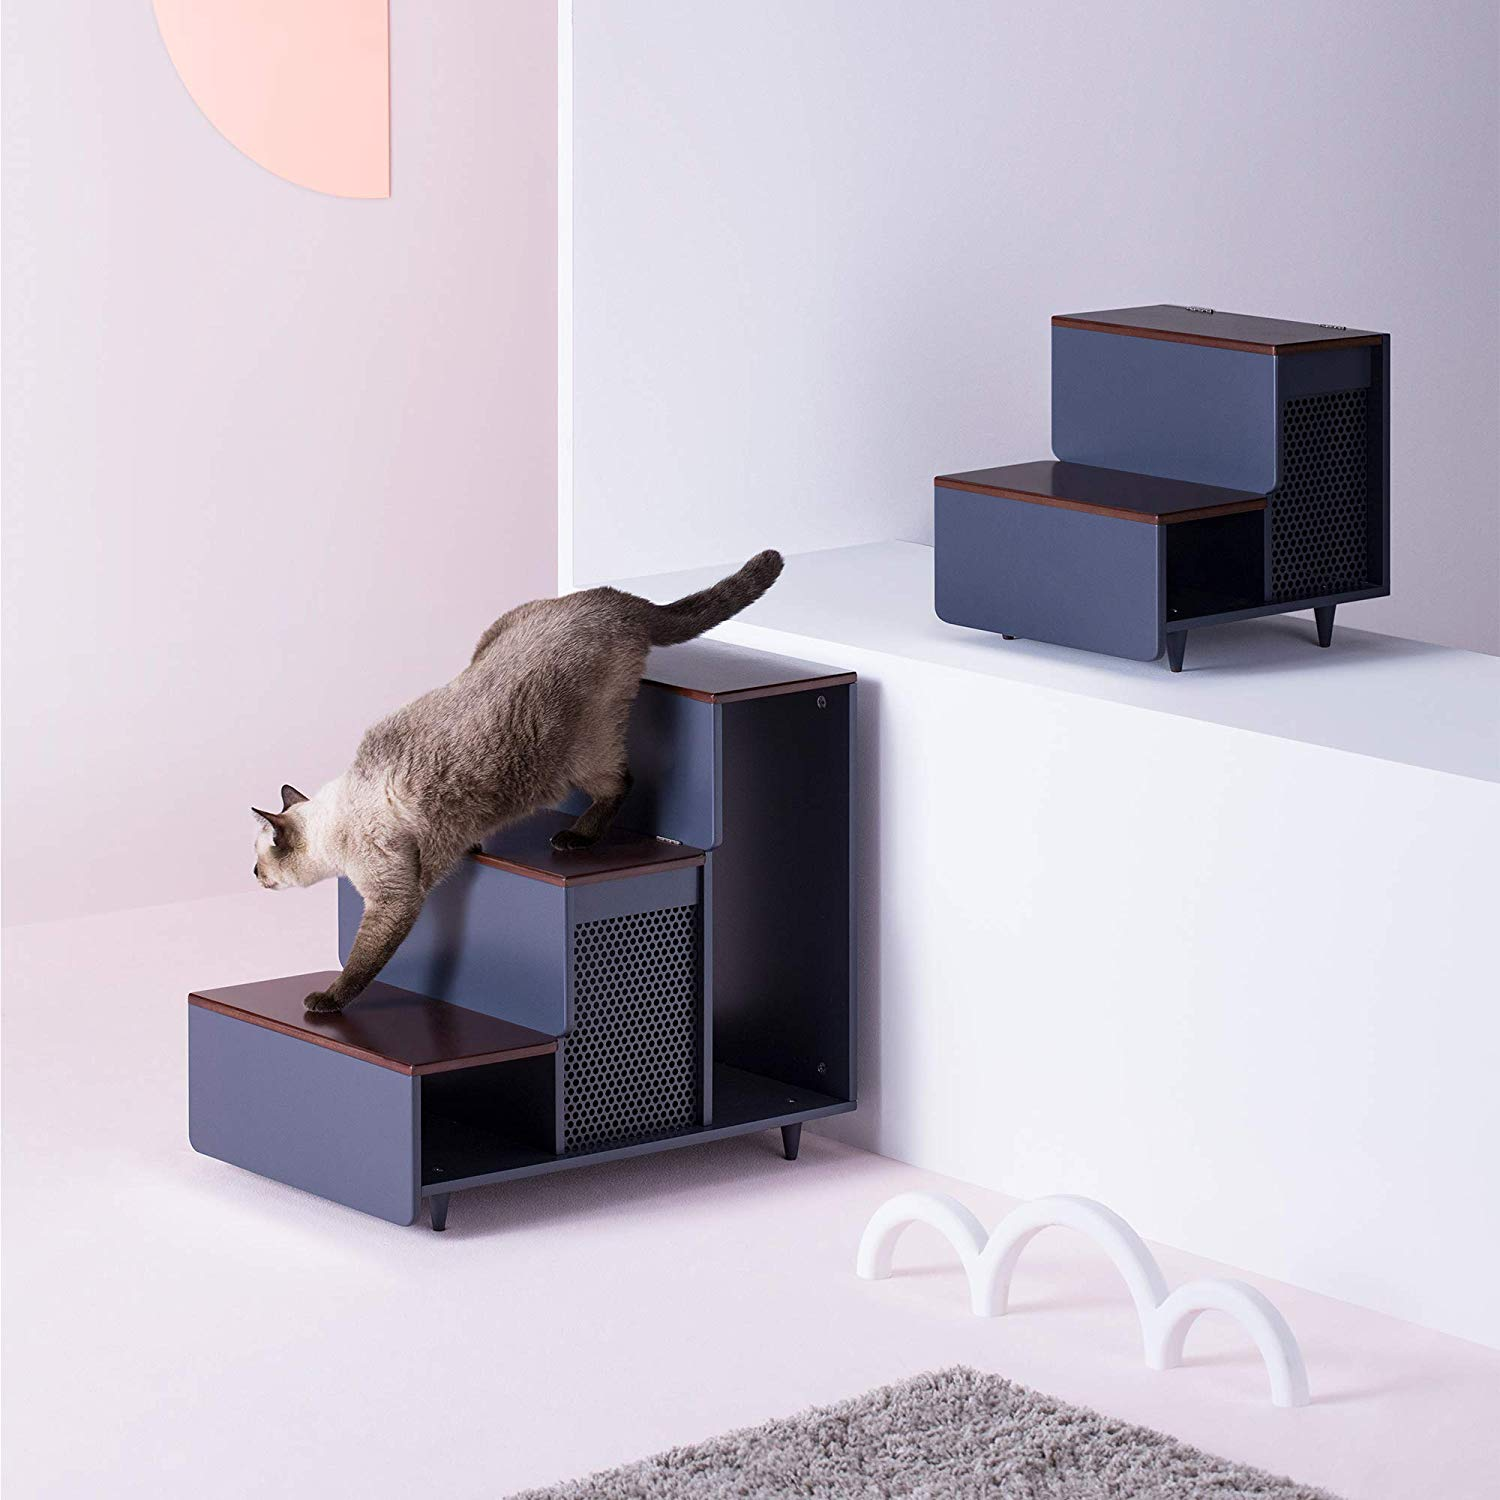 Mod-century Modern Wood Pet Steps with Storage